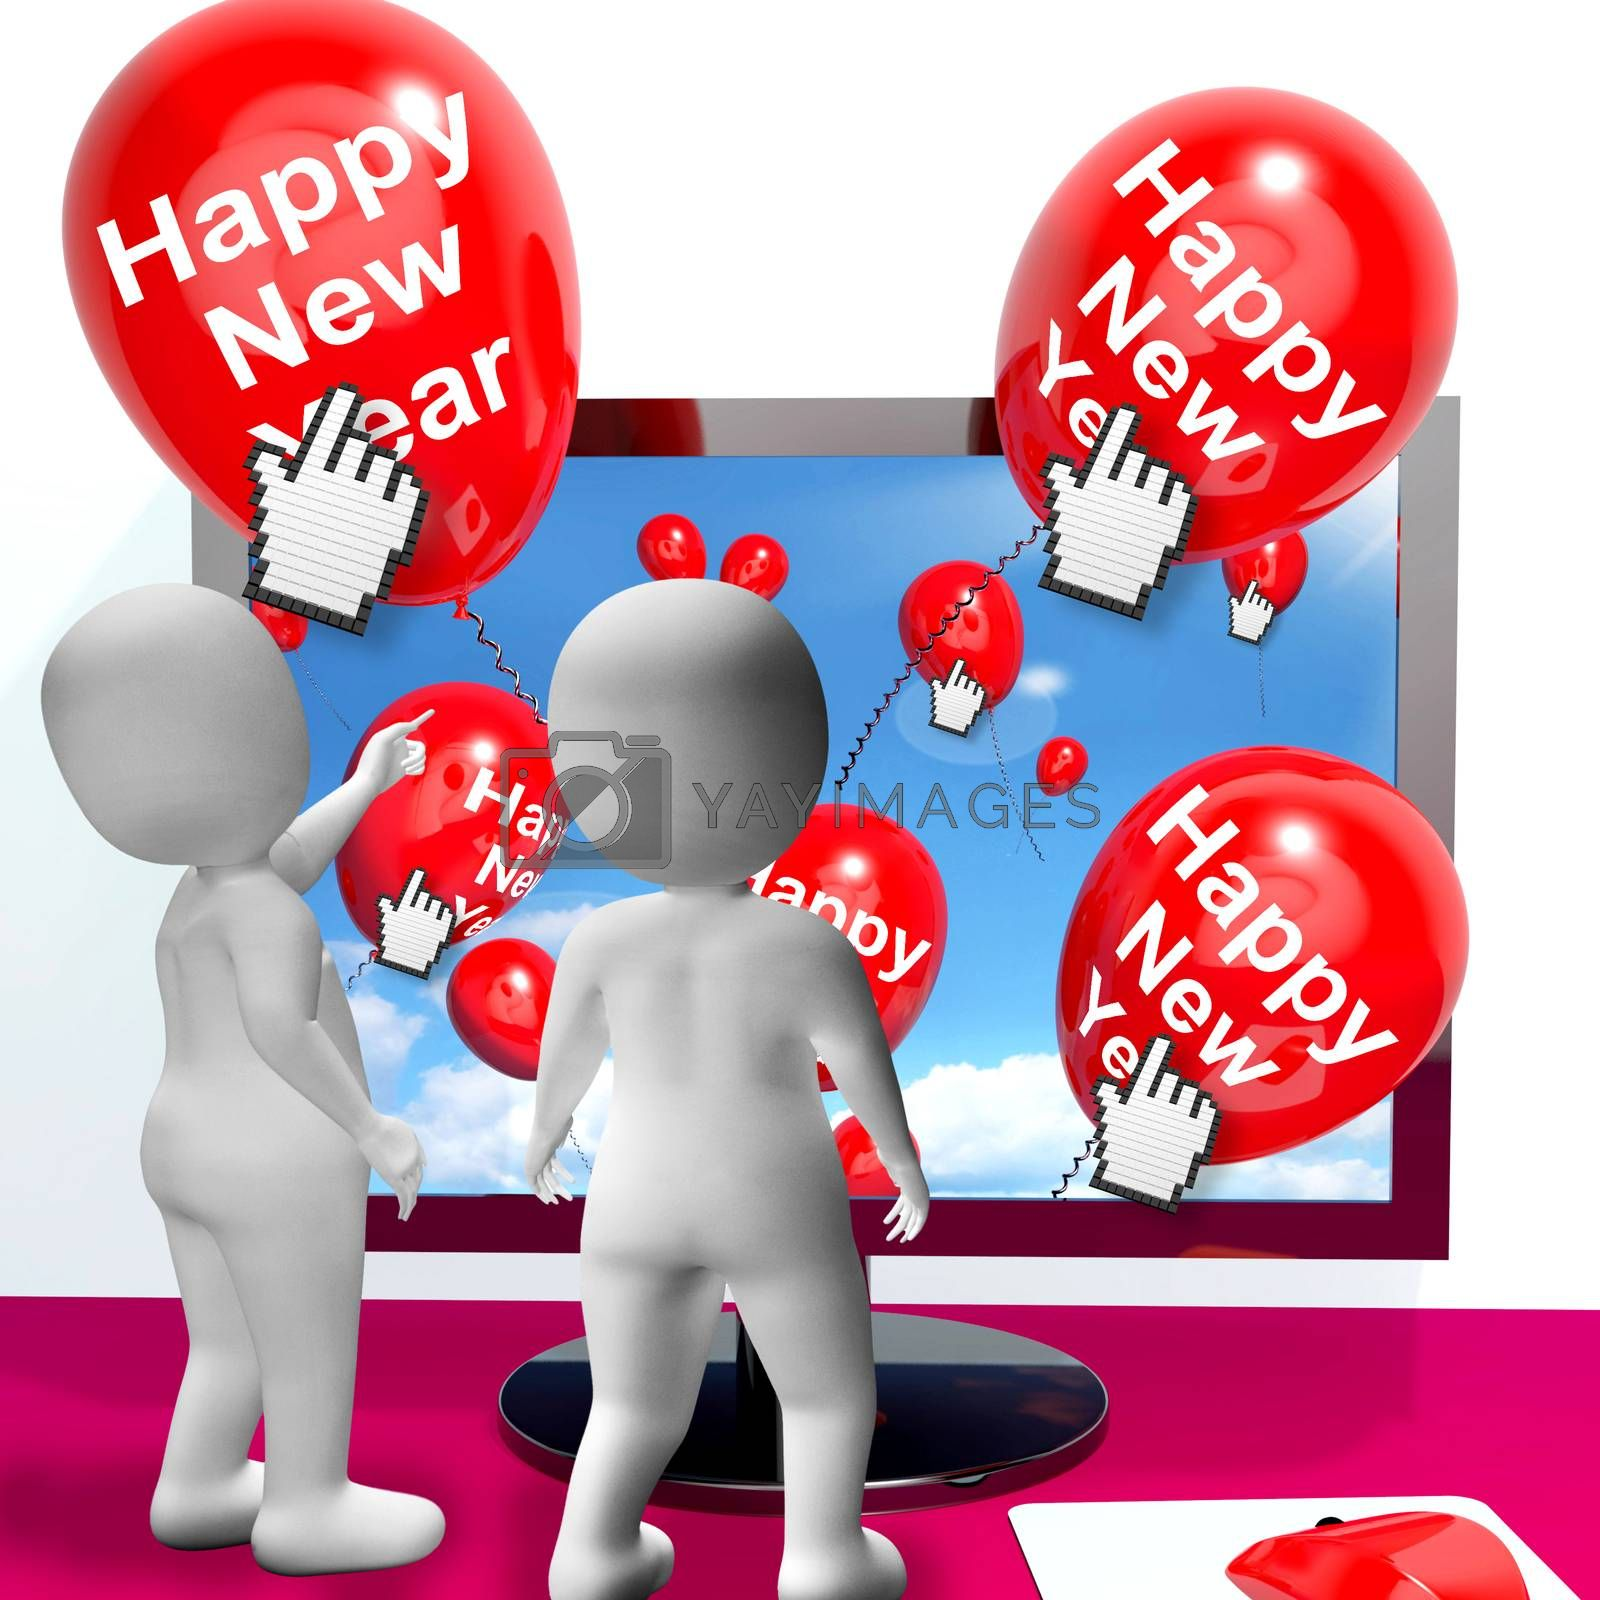 Happy New Year Balloons Showing Online Celebration Or Invitations